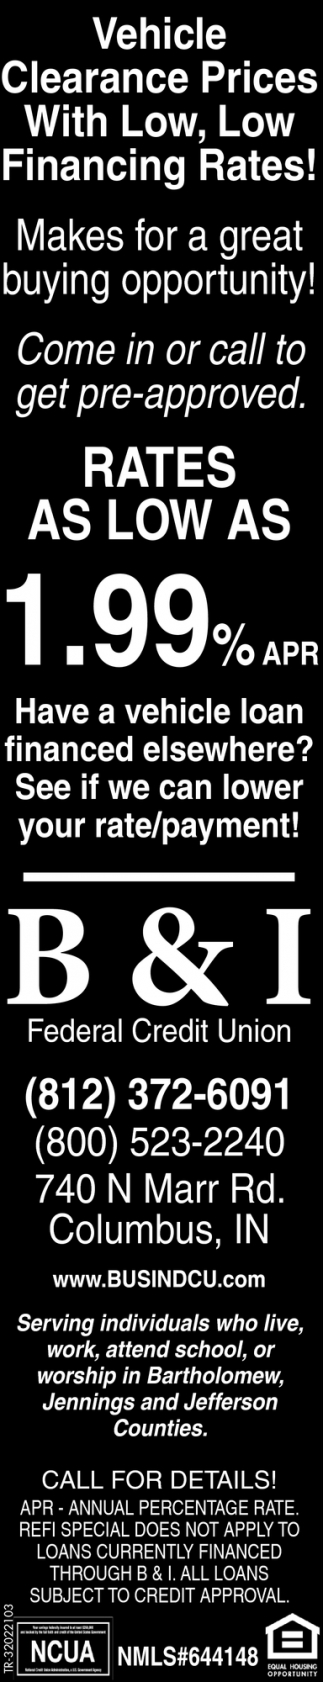 Vehicle Clearance Prices With Low, Low Financing Rates!